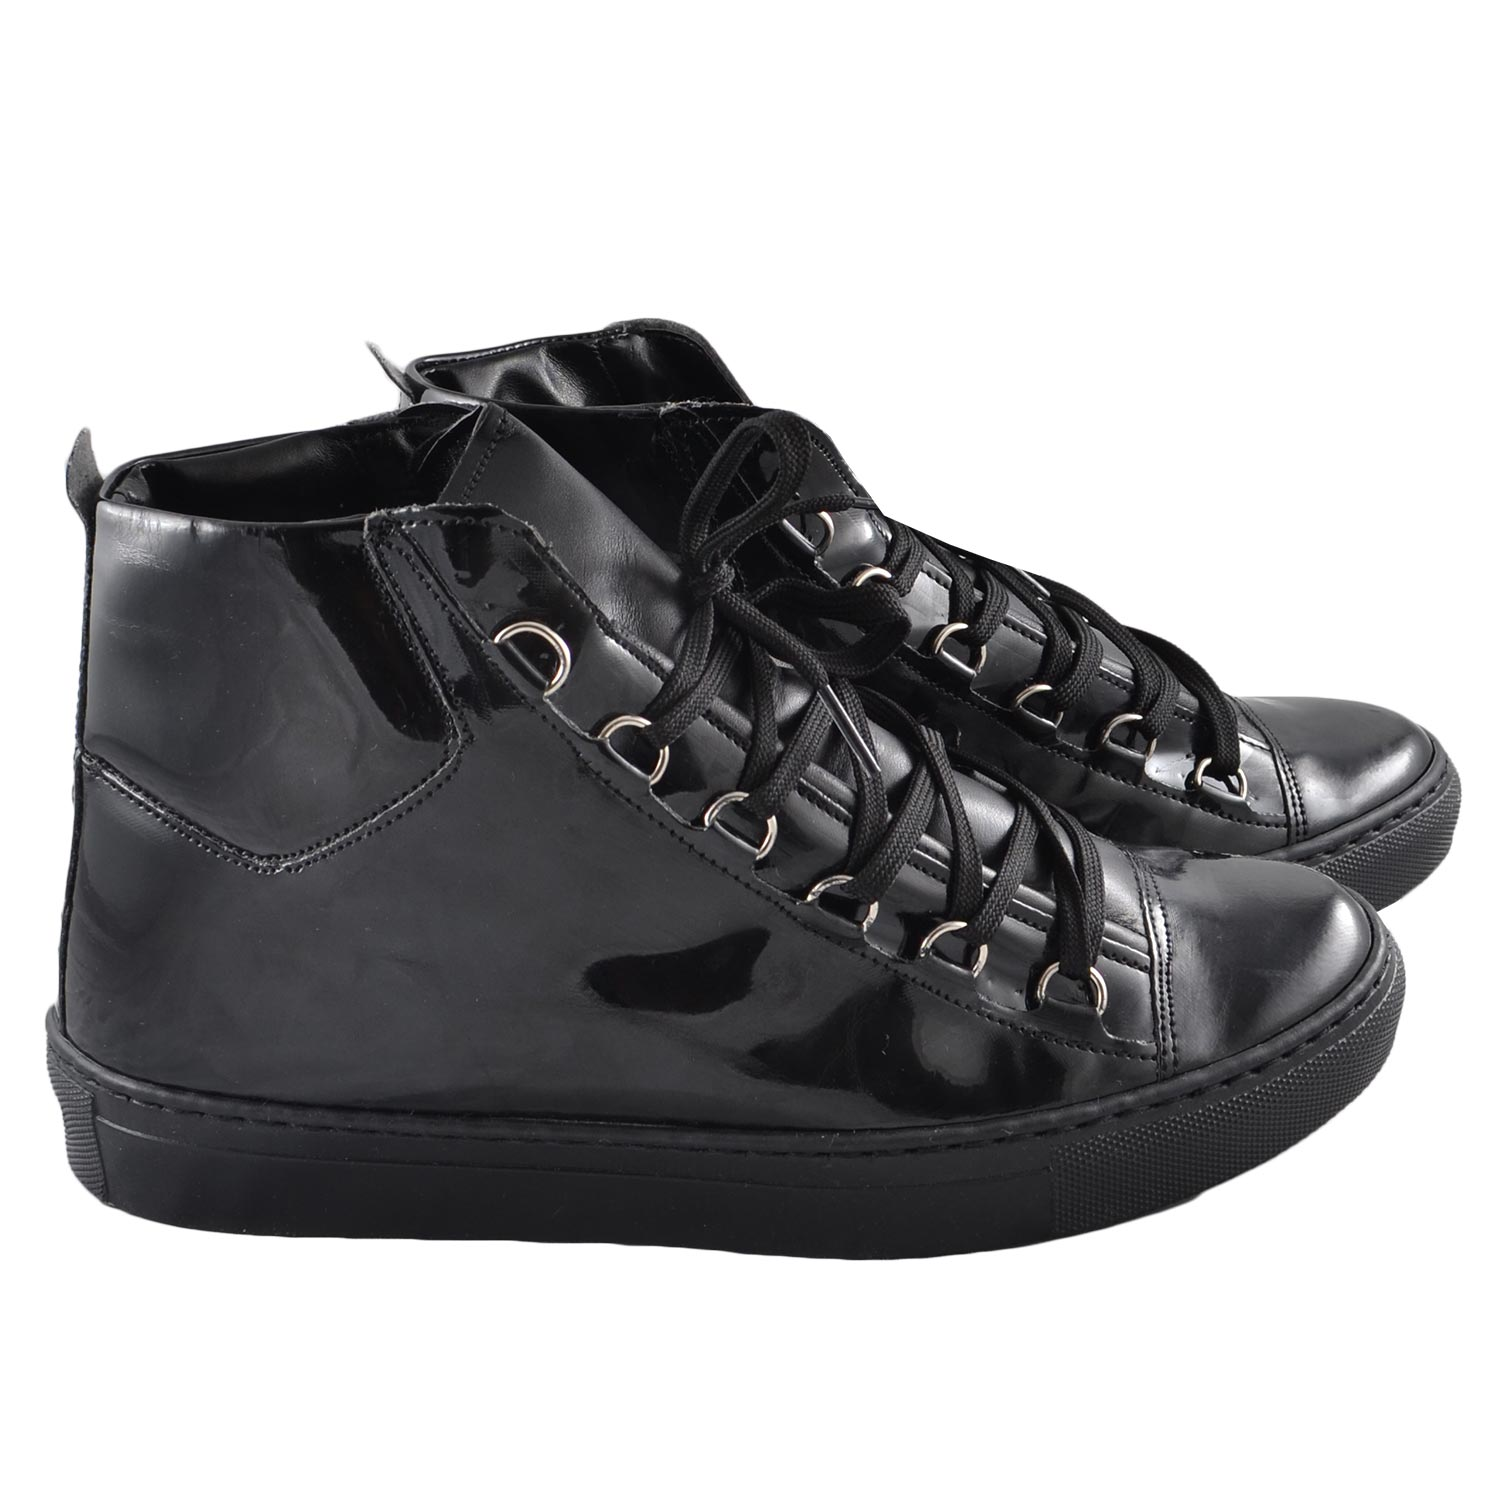 Sneakers alta balen nero lucido uomo sneakers alta Made in Italy | MaluShoes